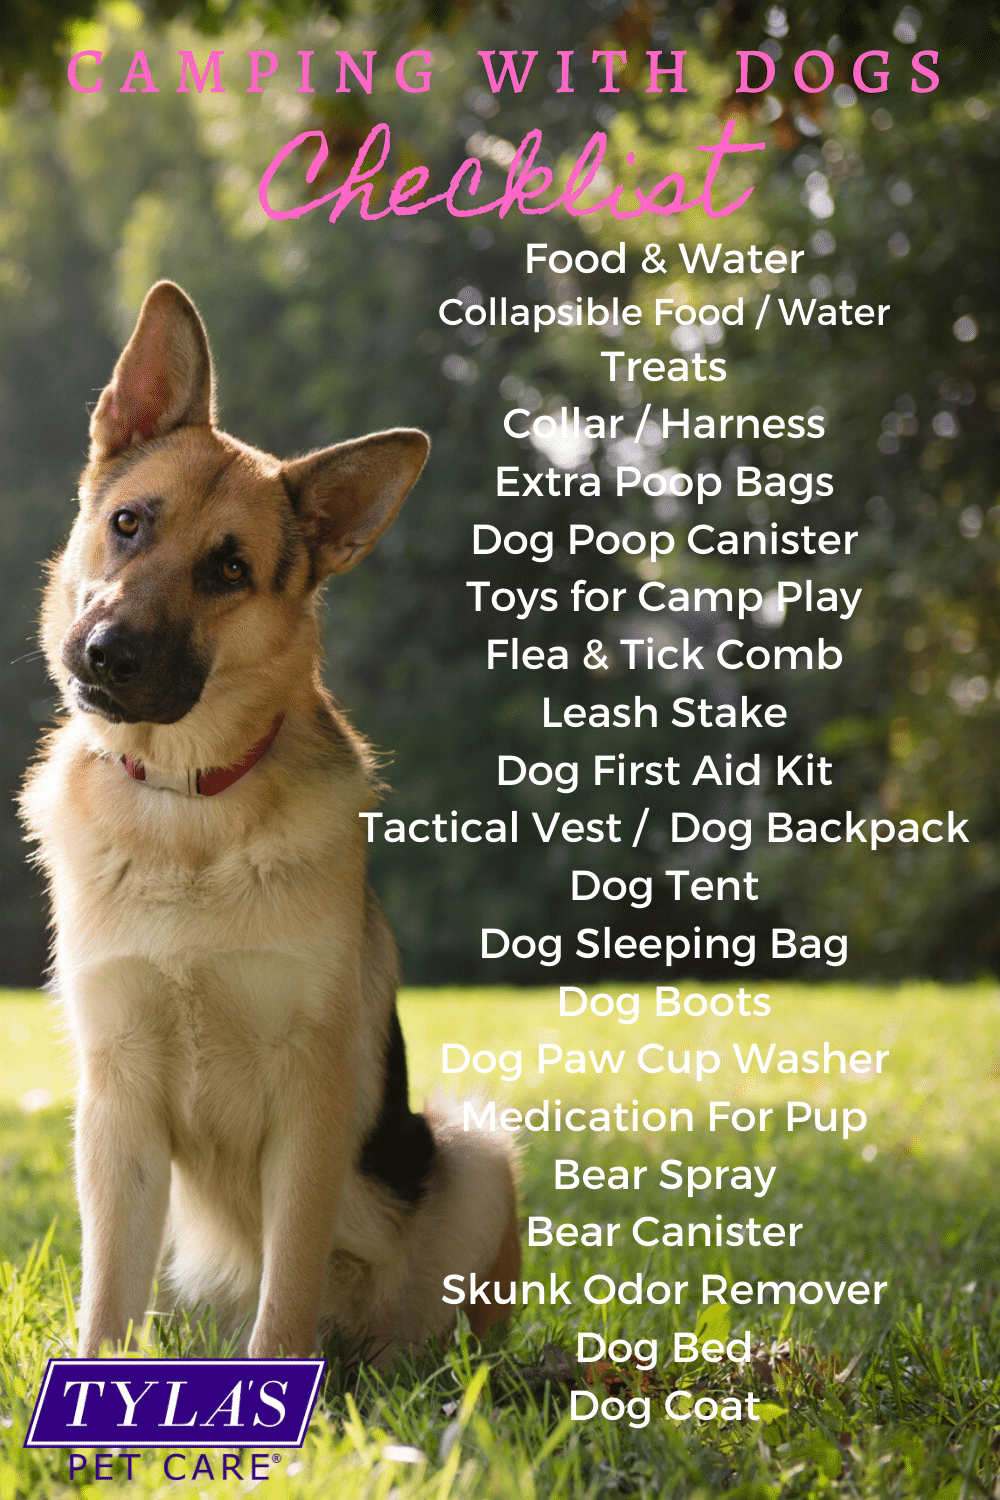 Camping With Dogs Gear List